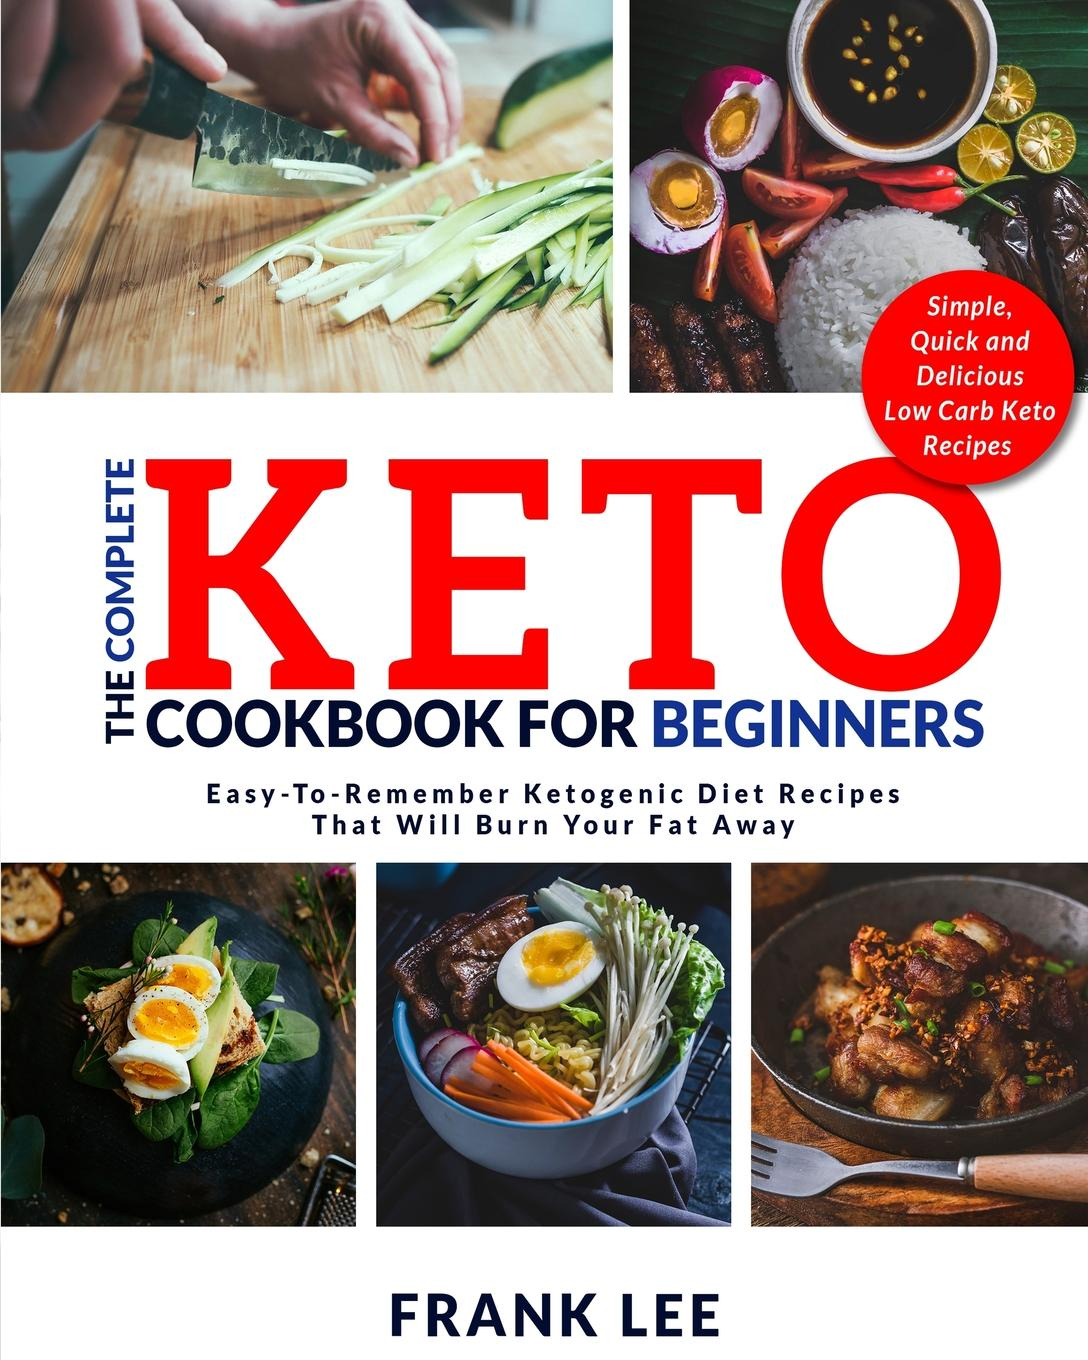 Frank Lee The Complete Keto Cookbook For Beginners. Easy-To-Remember Ketogenic Diet Recipes That Will Burn Your Fat Away . Simple, Quick and Delicious Low Carb Keto Recipes sallie stone 25 delicious soup recipes